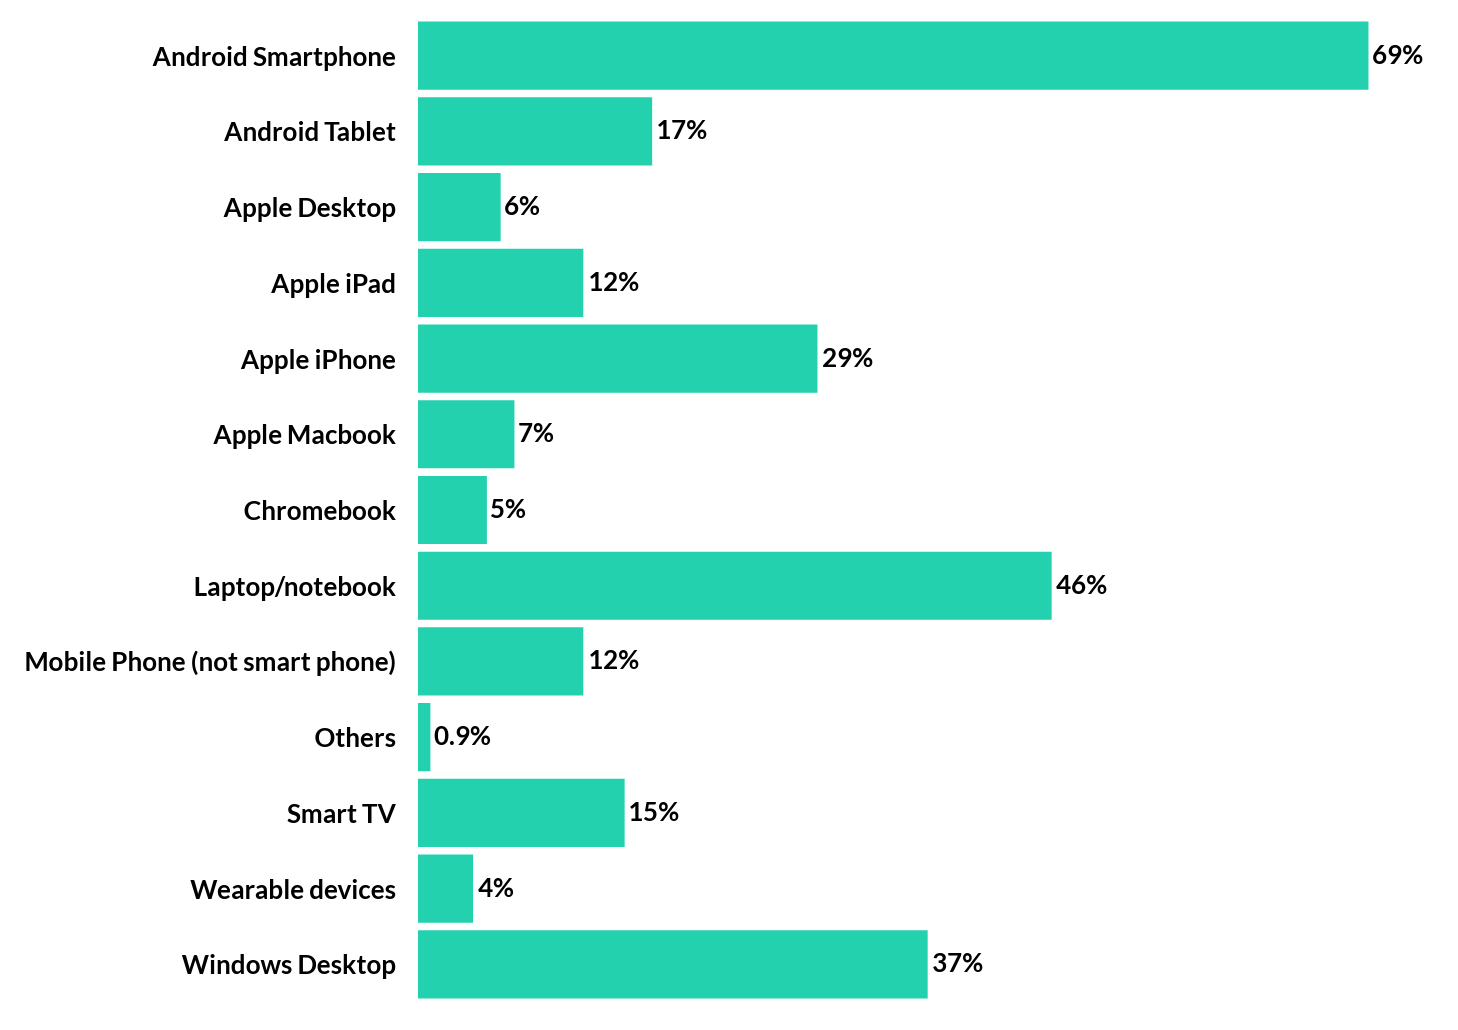 Personal devices used for Social Media